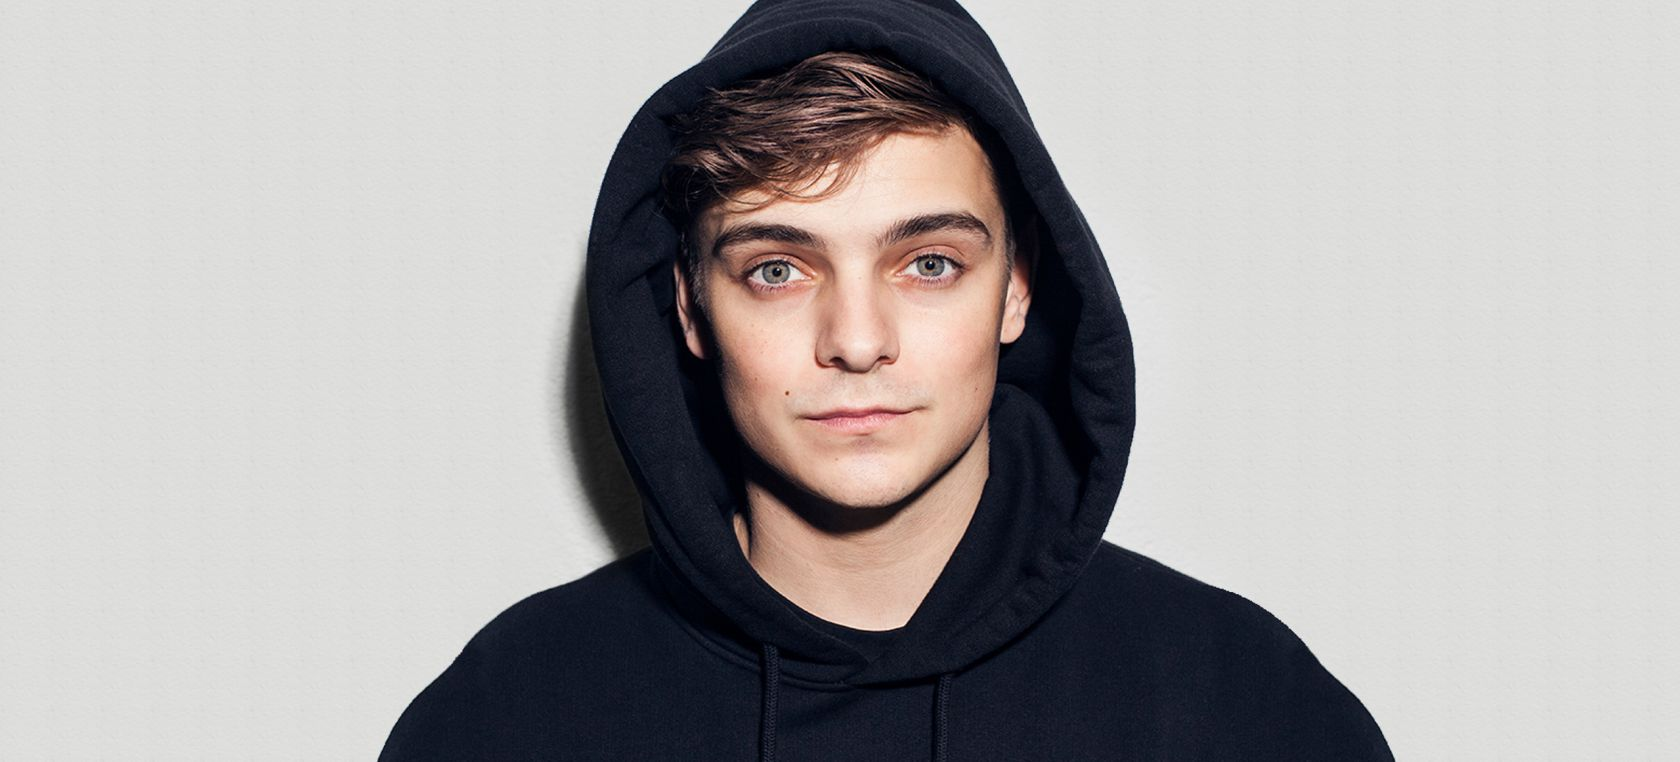 World Dance Music: Martin Garrix 'In The Mix'